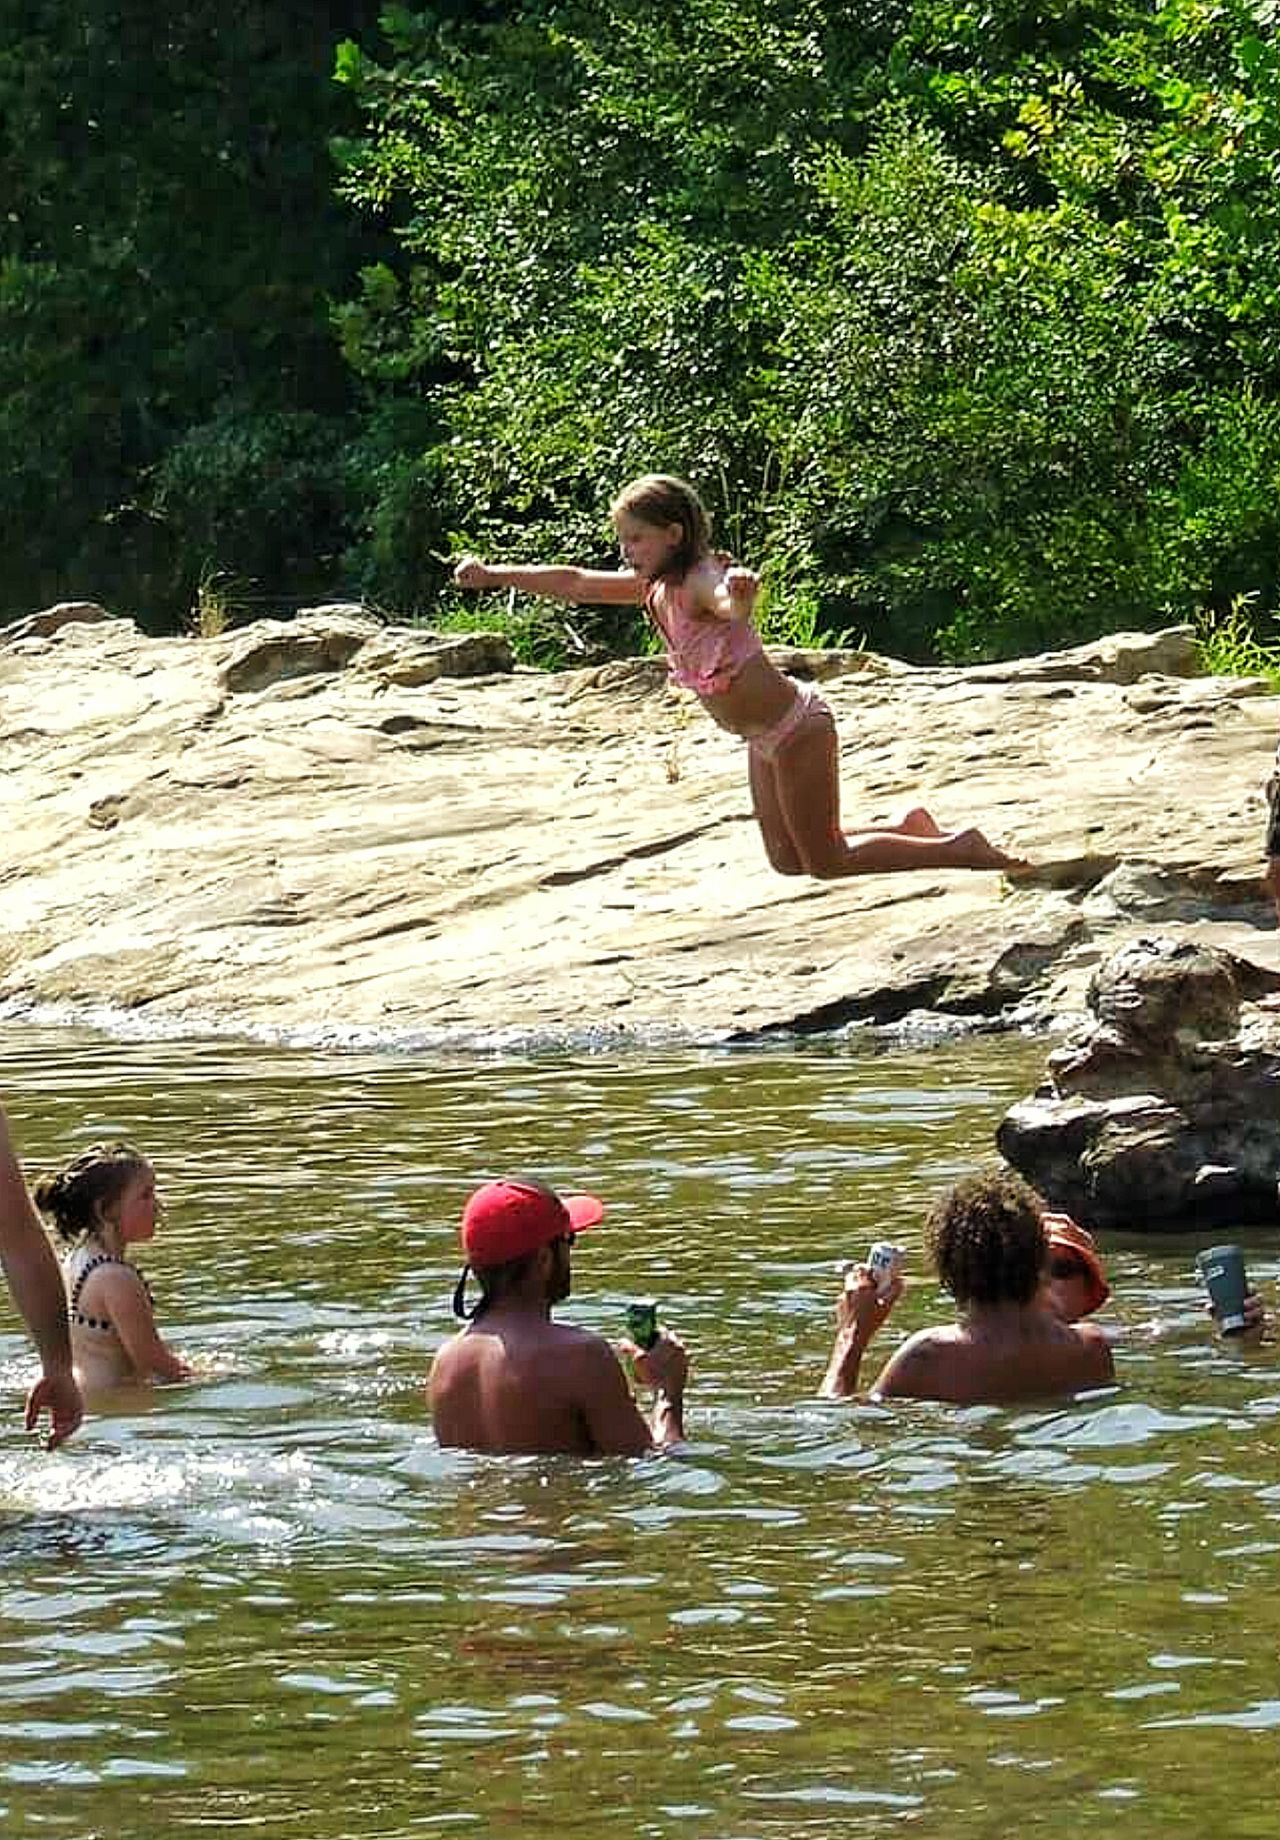 Girl Girl Jumping Kids Playing Swimming People Swimming People Watching Rocky Shoreline Sand Bar Motion Shot Motion Photography Frozen In Time Caught In Midair Water Activities Water Fun Water Kids Playing In The Water Street Photography Creek Bank Creek Kids Mississippi  Showcase July People And Places Enjoy The New Normal